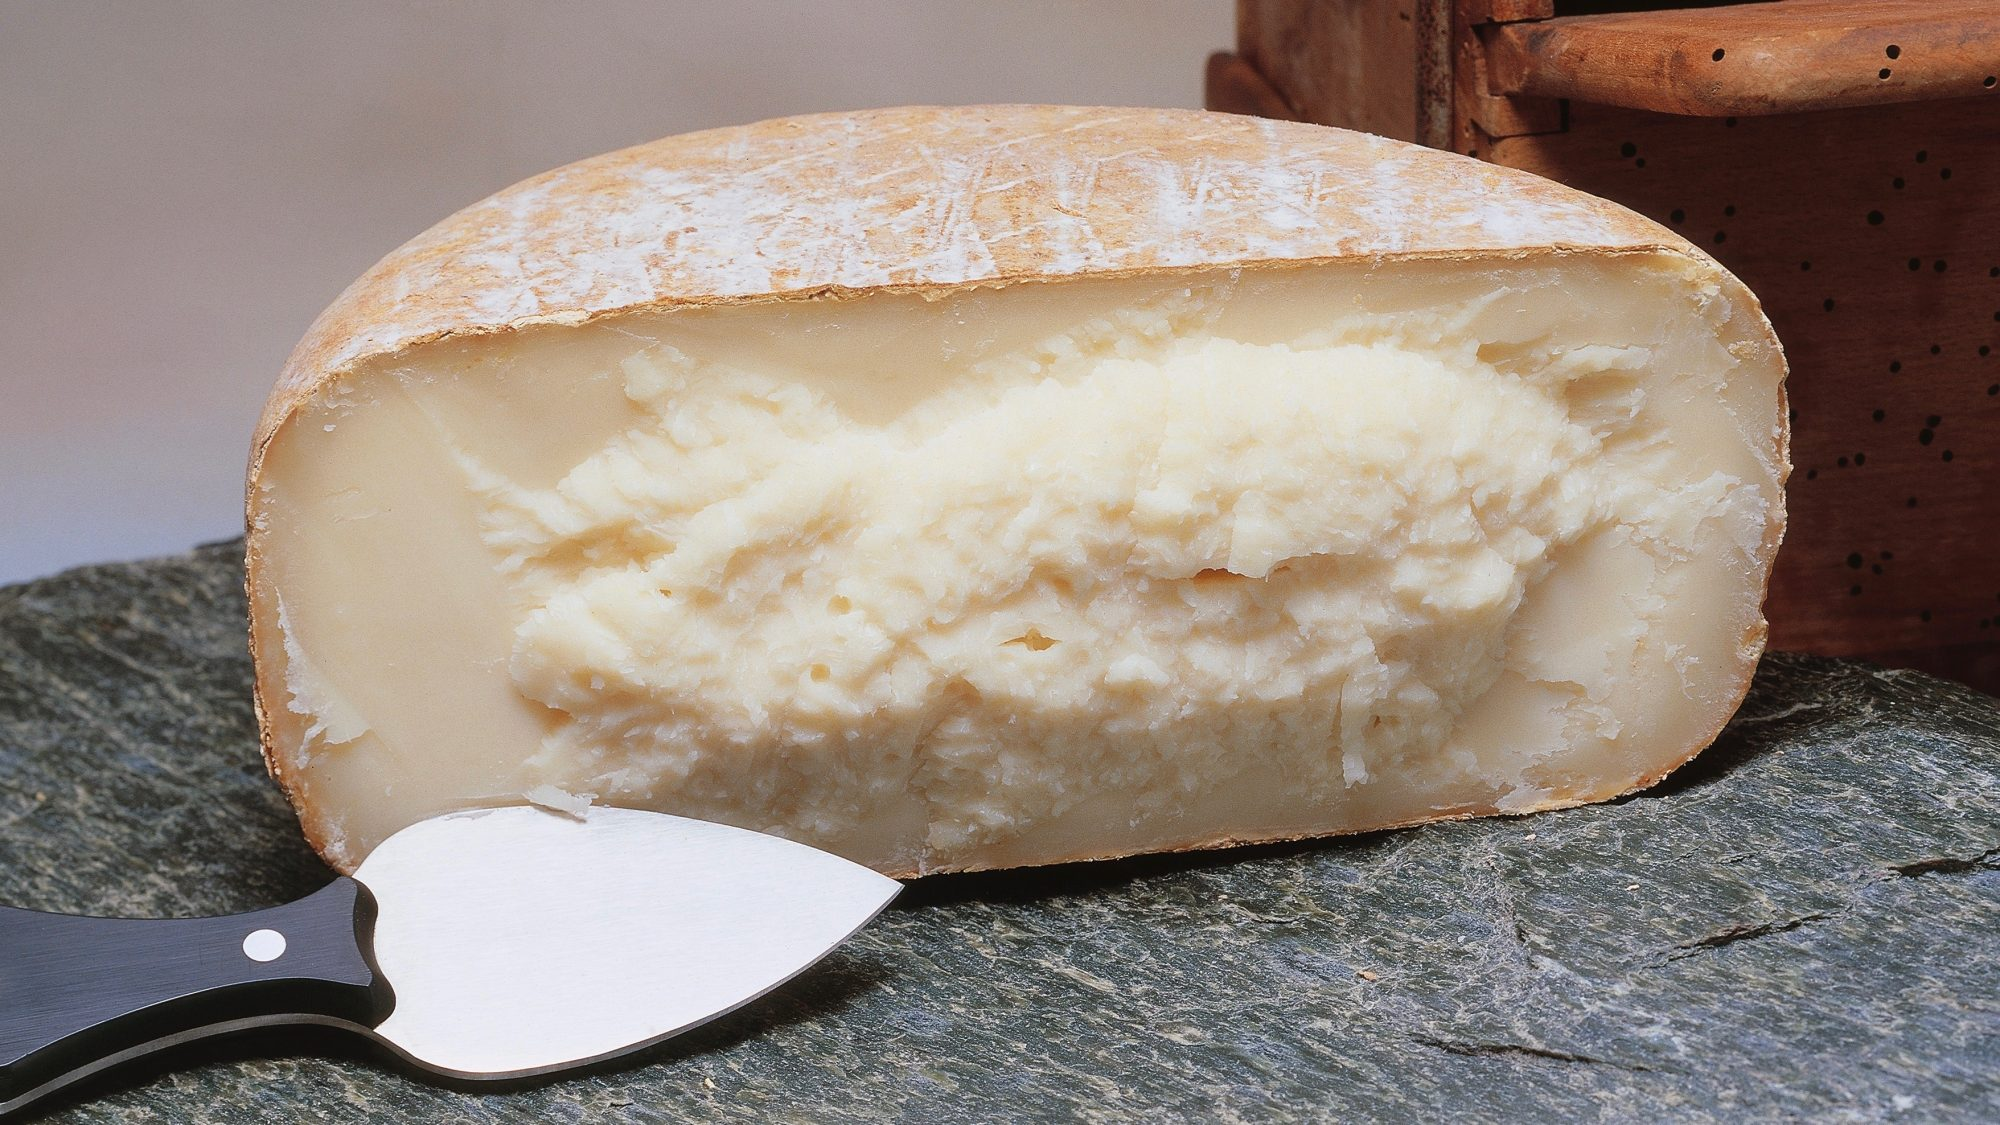 ossau-iraty-obscure-cheeses-ft-blog1017.jpg